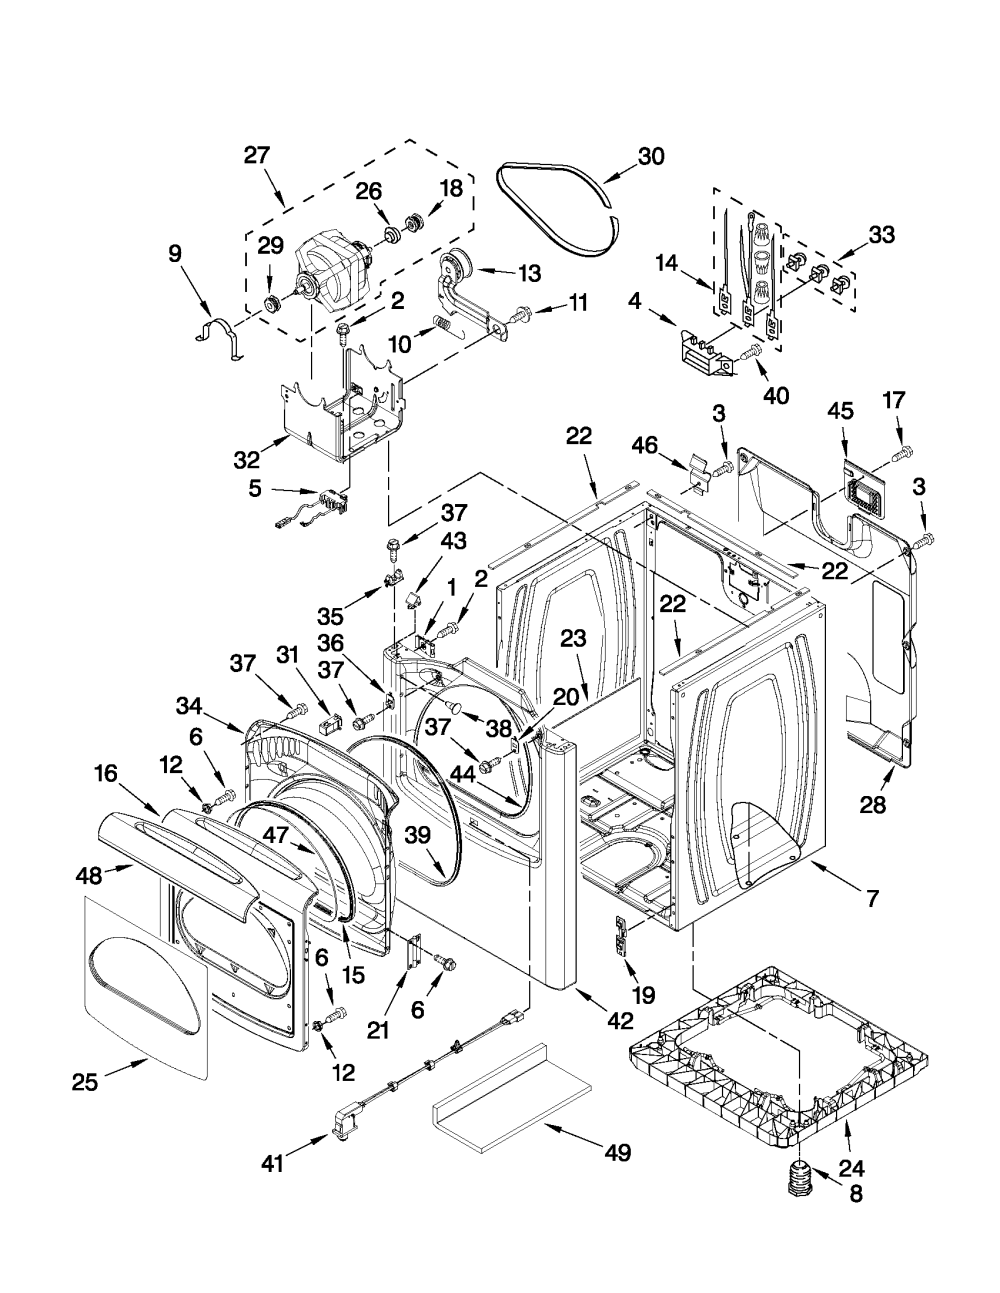 medium resolution of 95 pontiac bonneville wiring diagram 8 10 kenmo lp de u202295 pontiac bonneville engine diagram